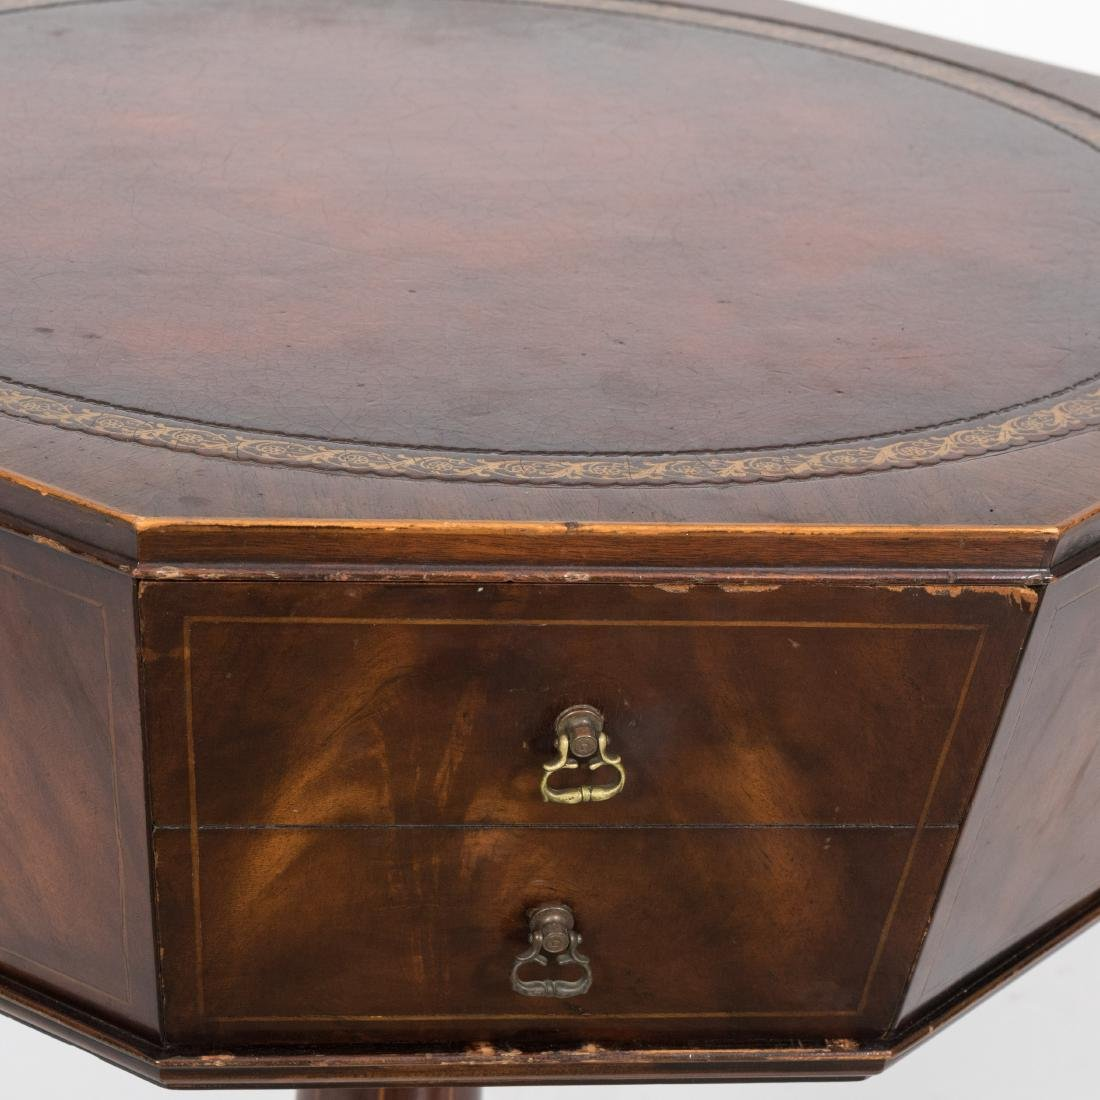 Weiman Octagonal Leather Top Table - 2